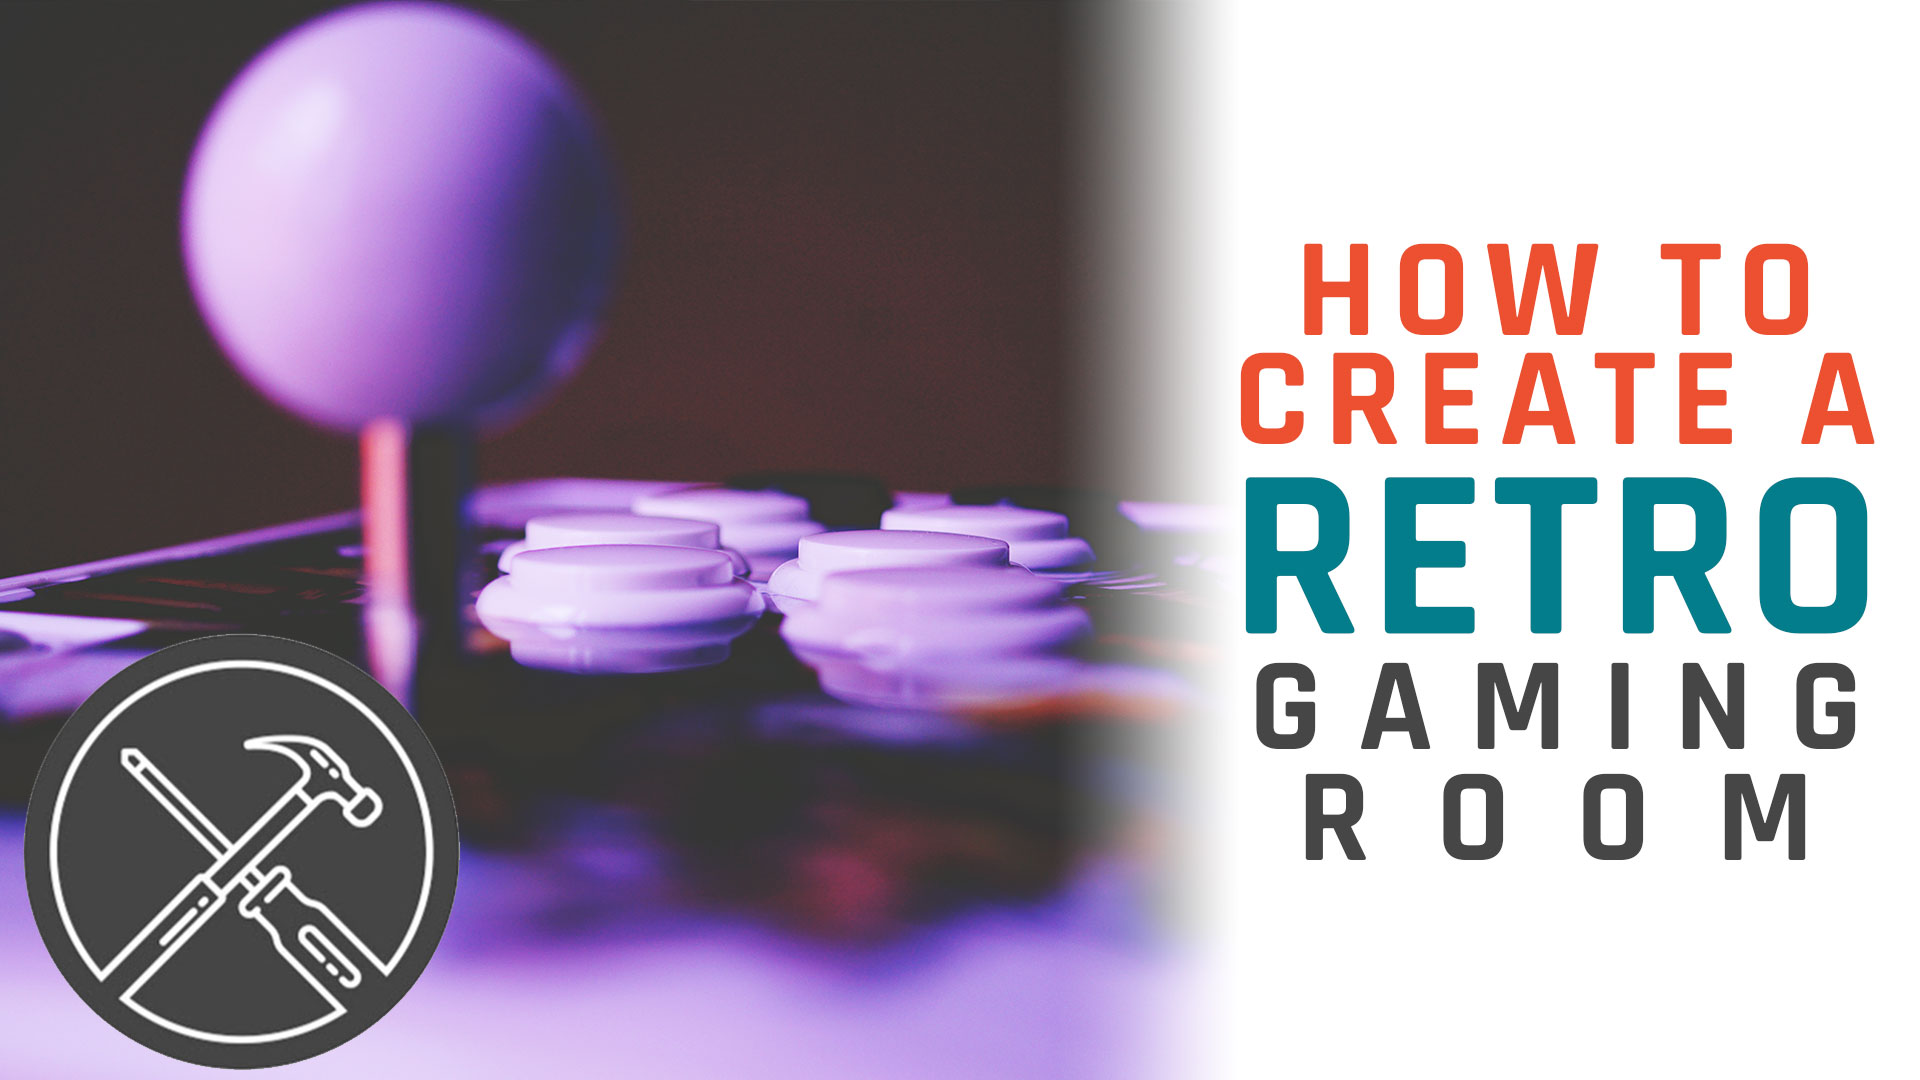 How to Create a Retro Gaming Room